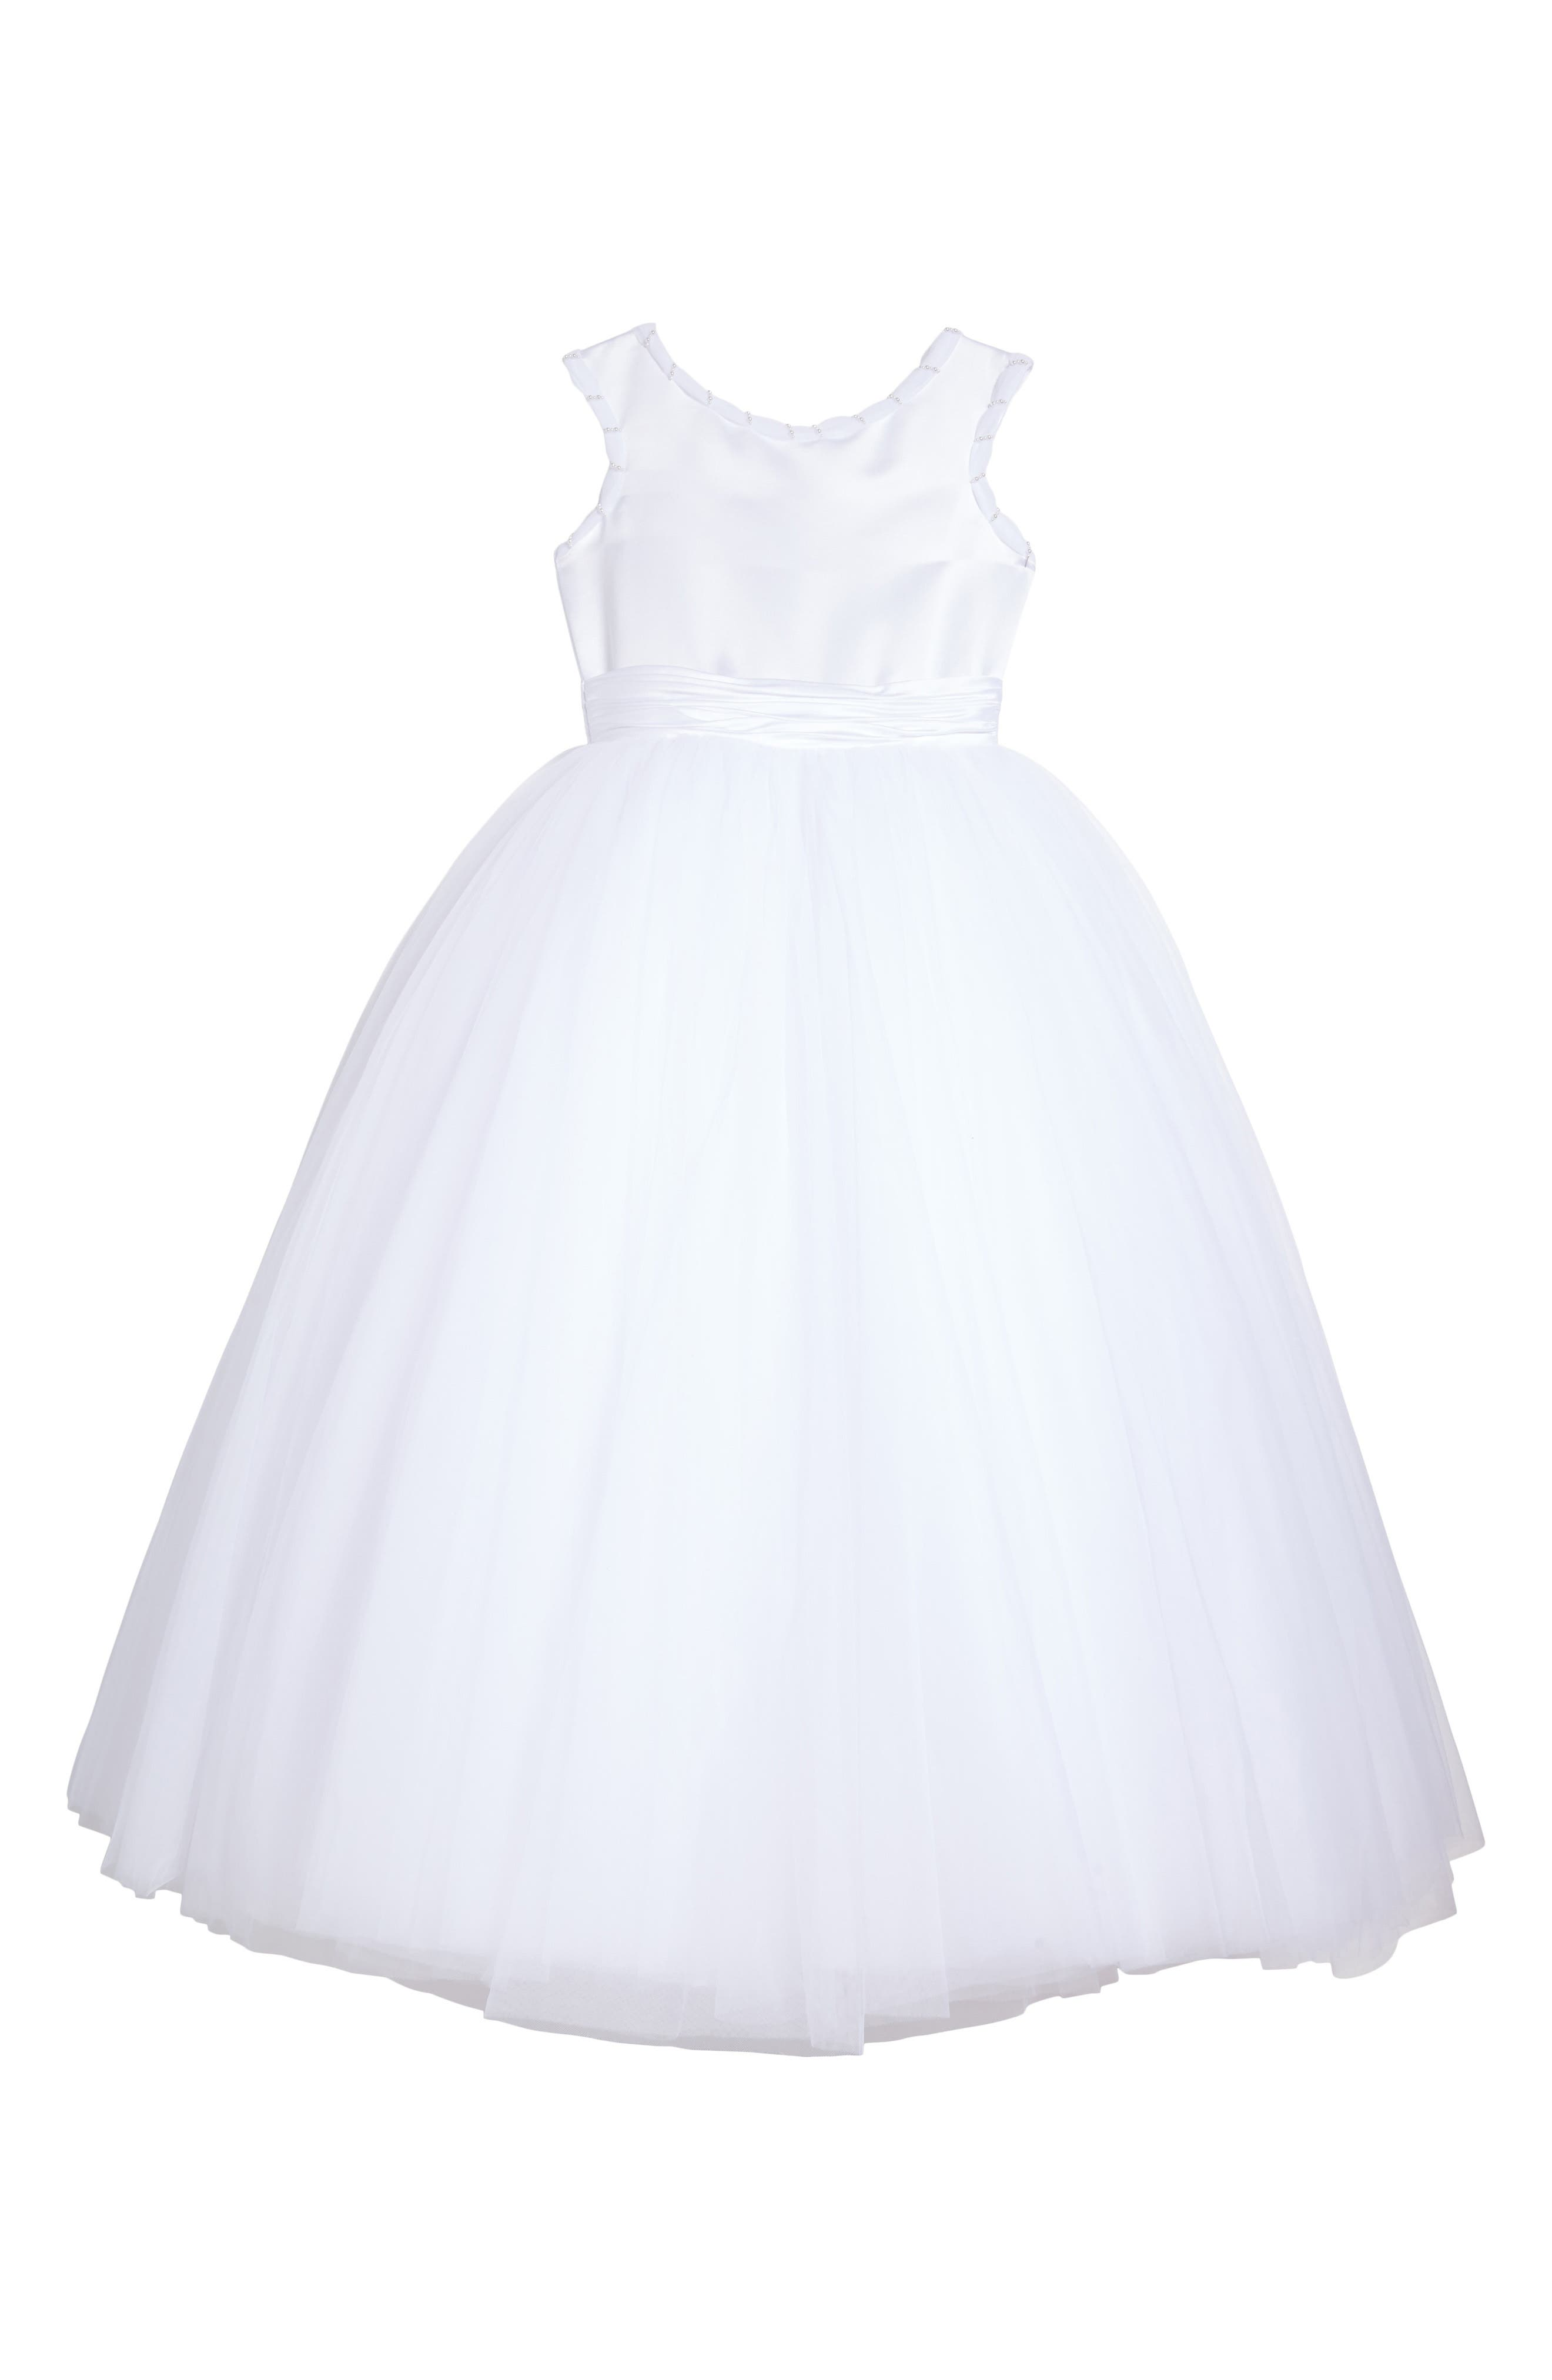 Main Image - Joan Calabrese for Mon Cheri Tulle Dress (Little Girls & Big Girls)